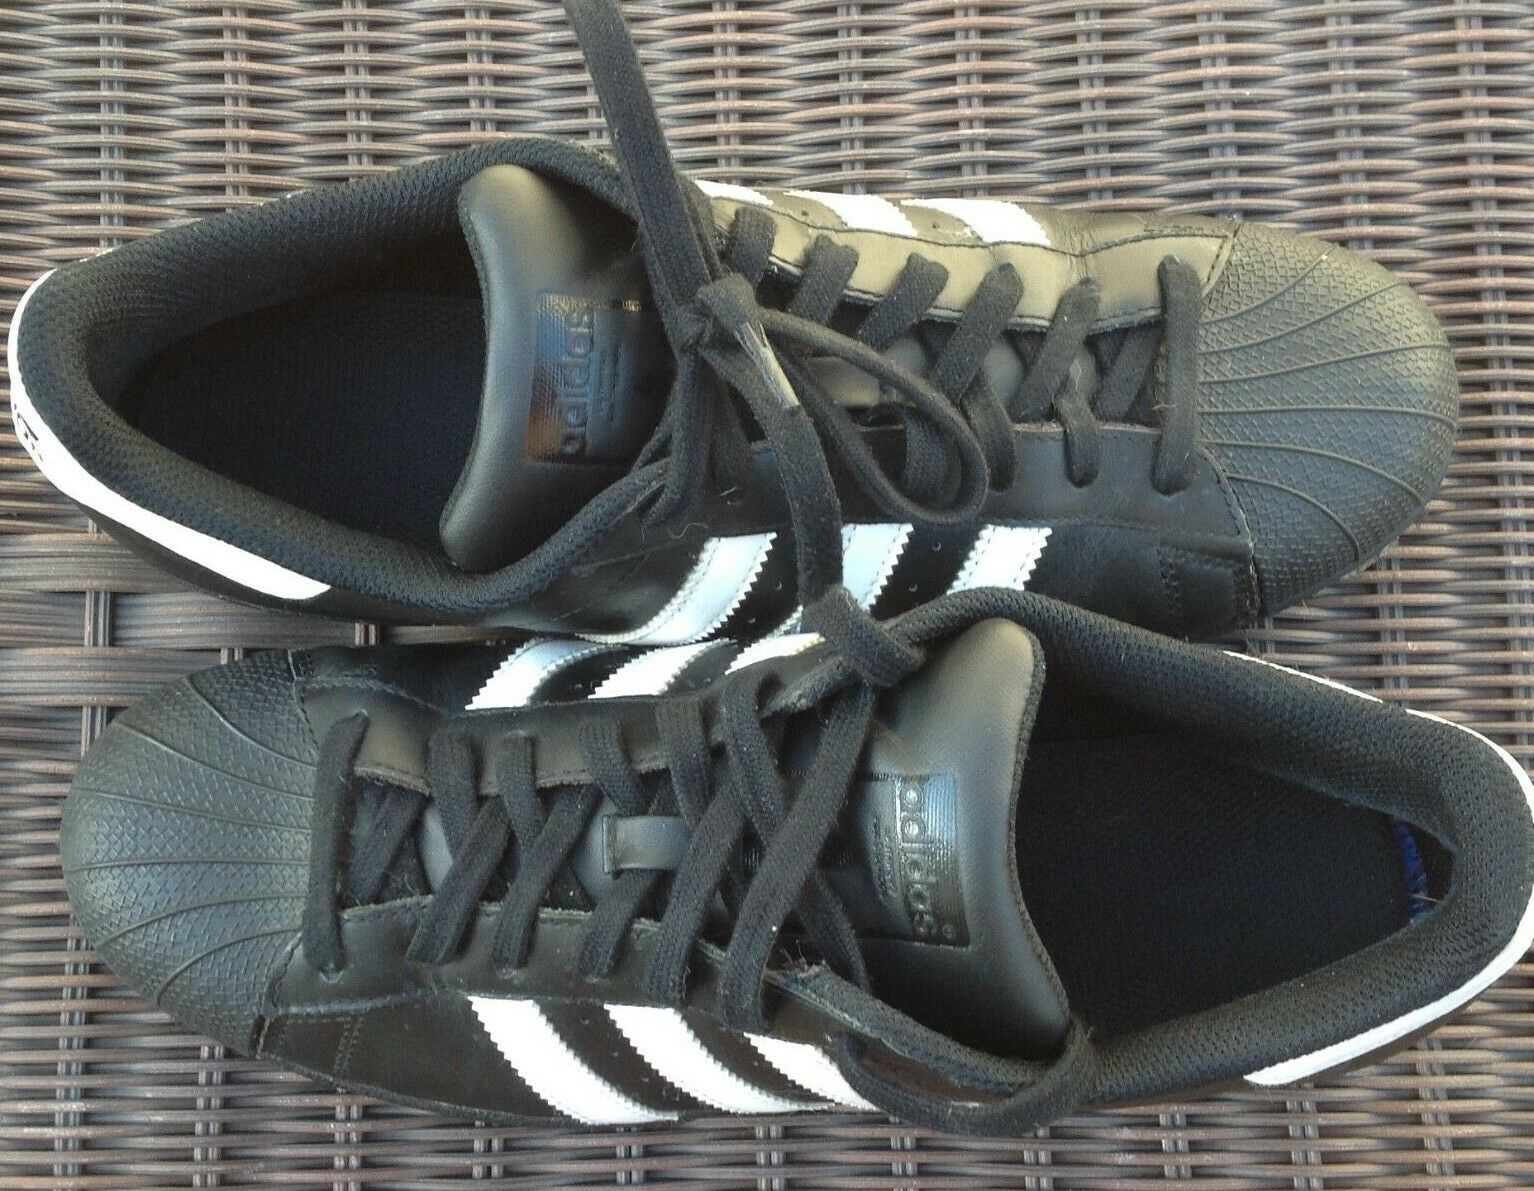 Adidas Superstar Man's Sneakers Black Size 9.5